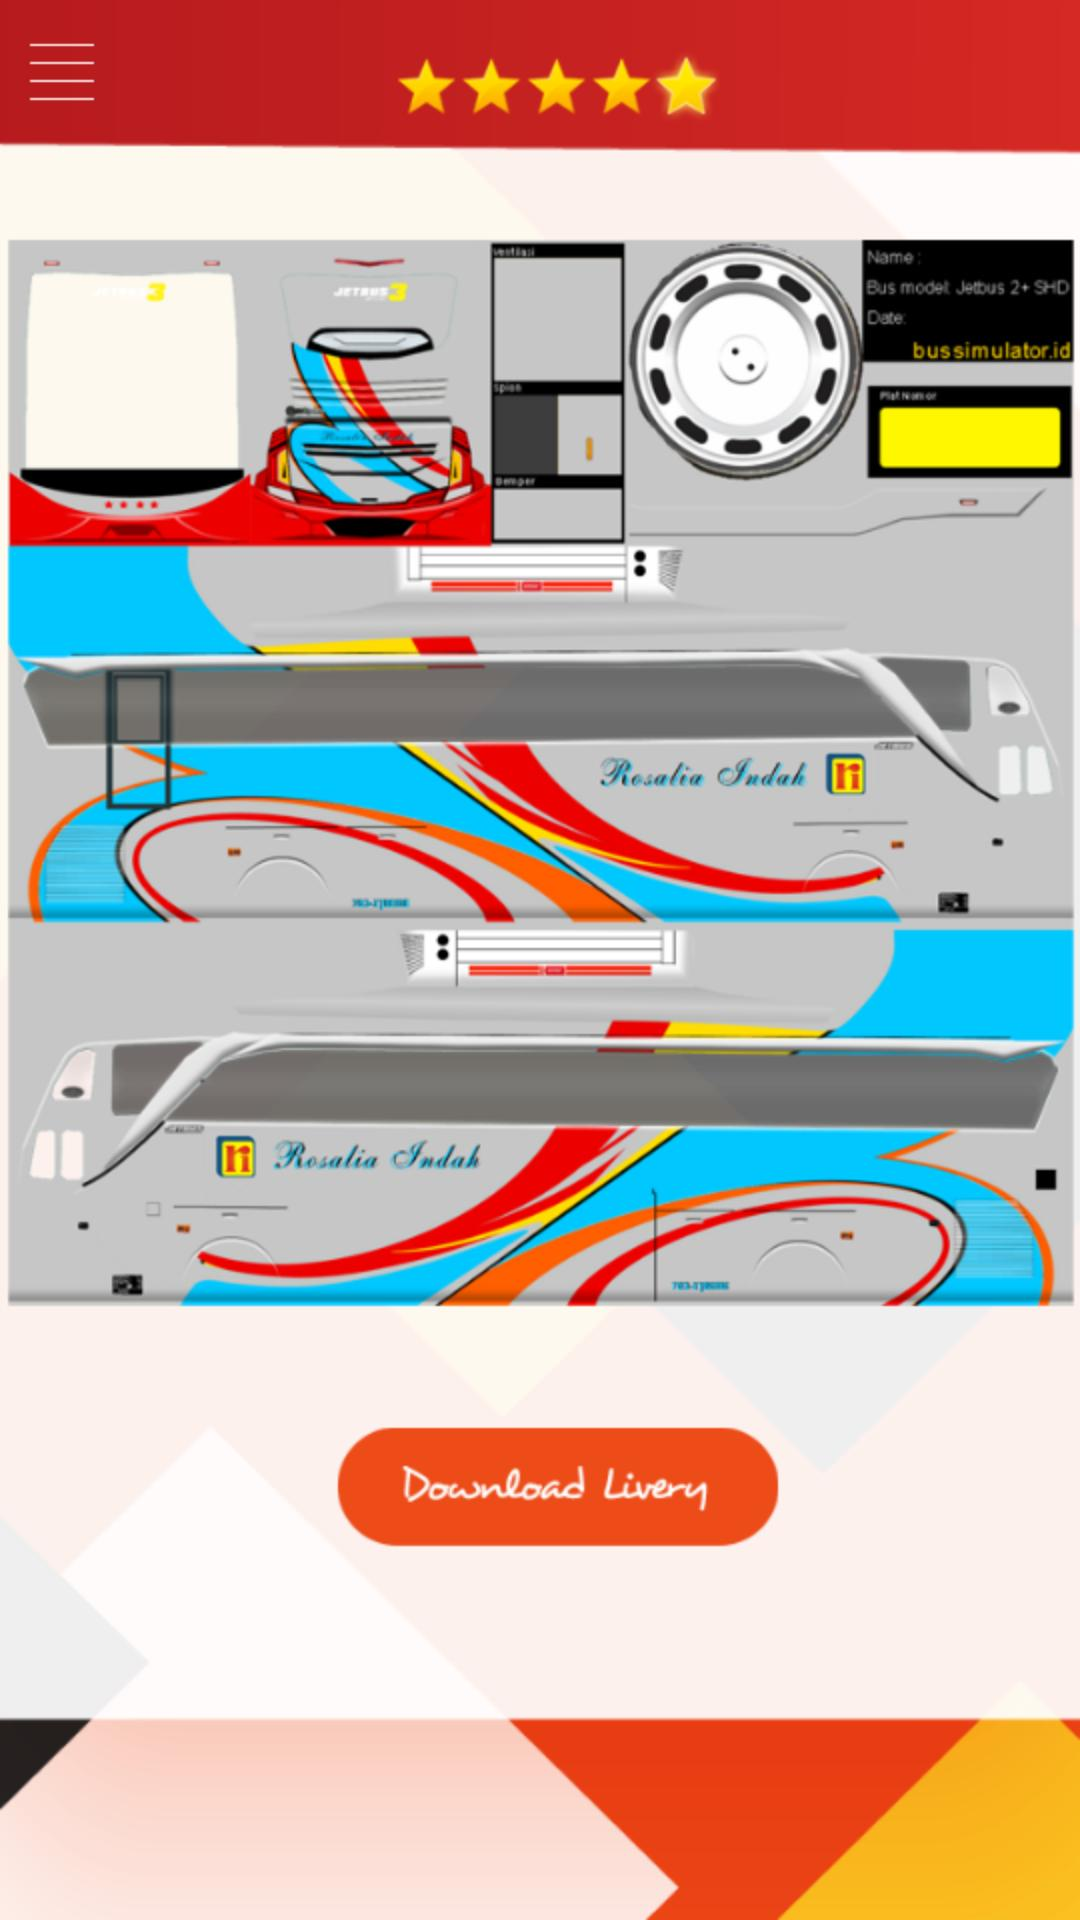 Livery Bussid Jetbus 3 Shd Update For Android Apk Download